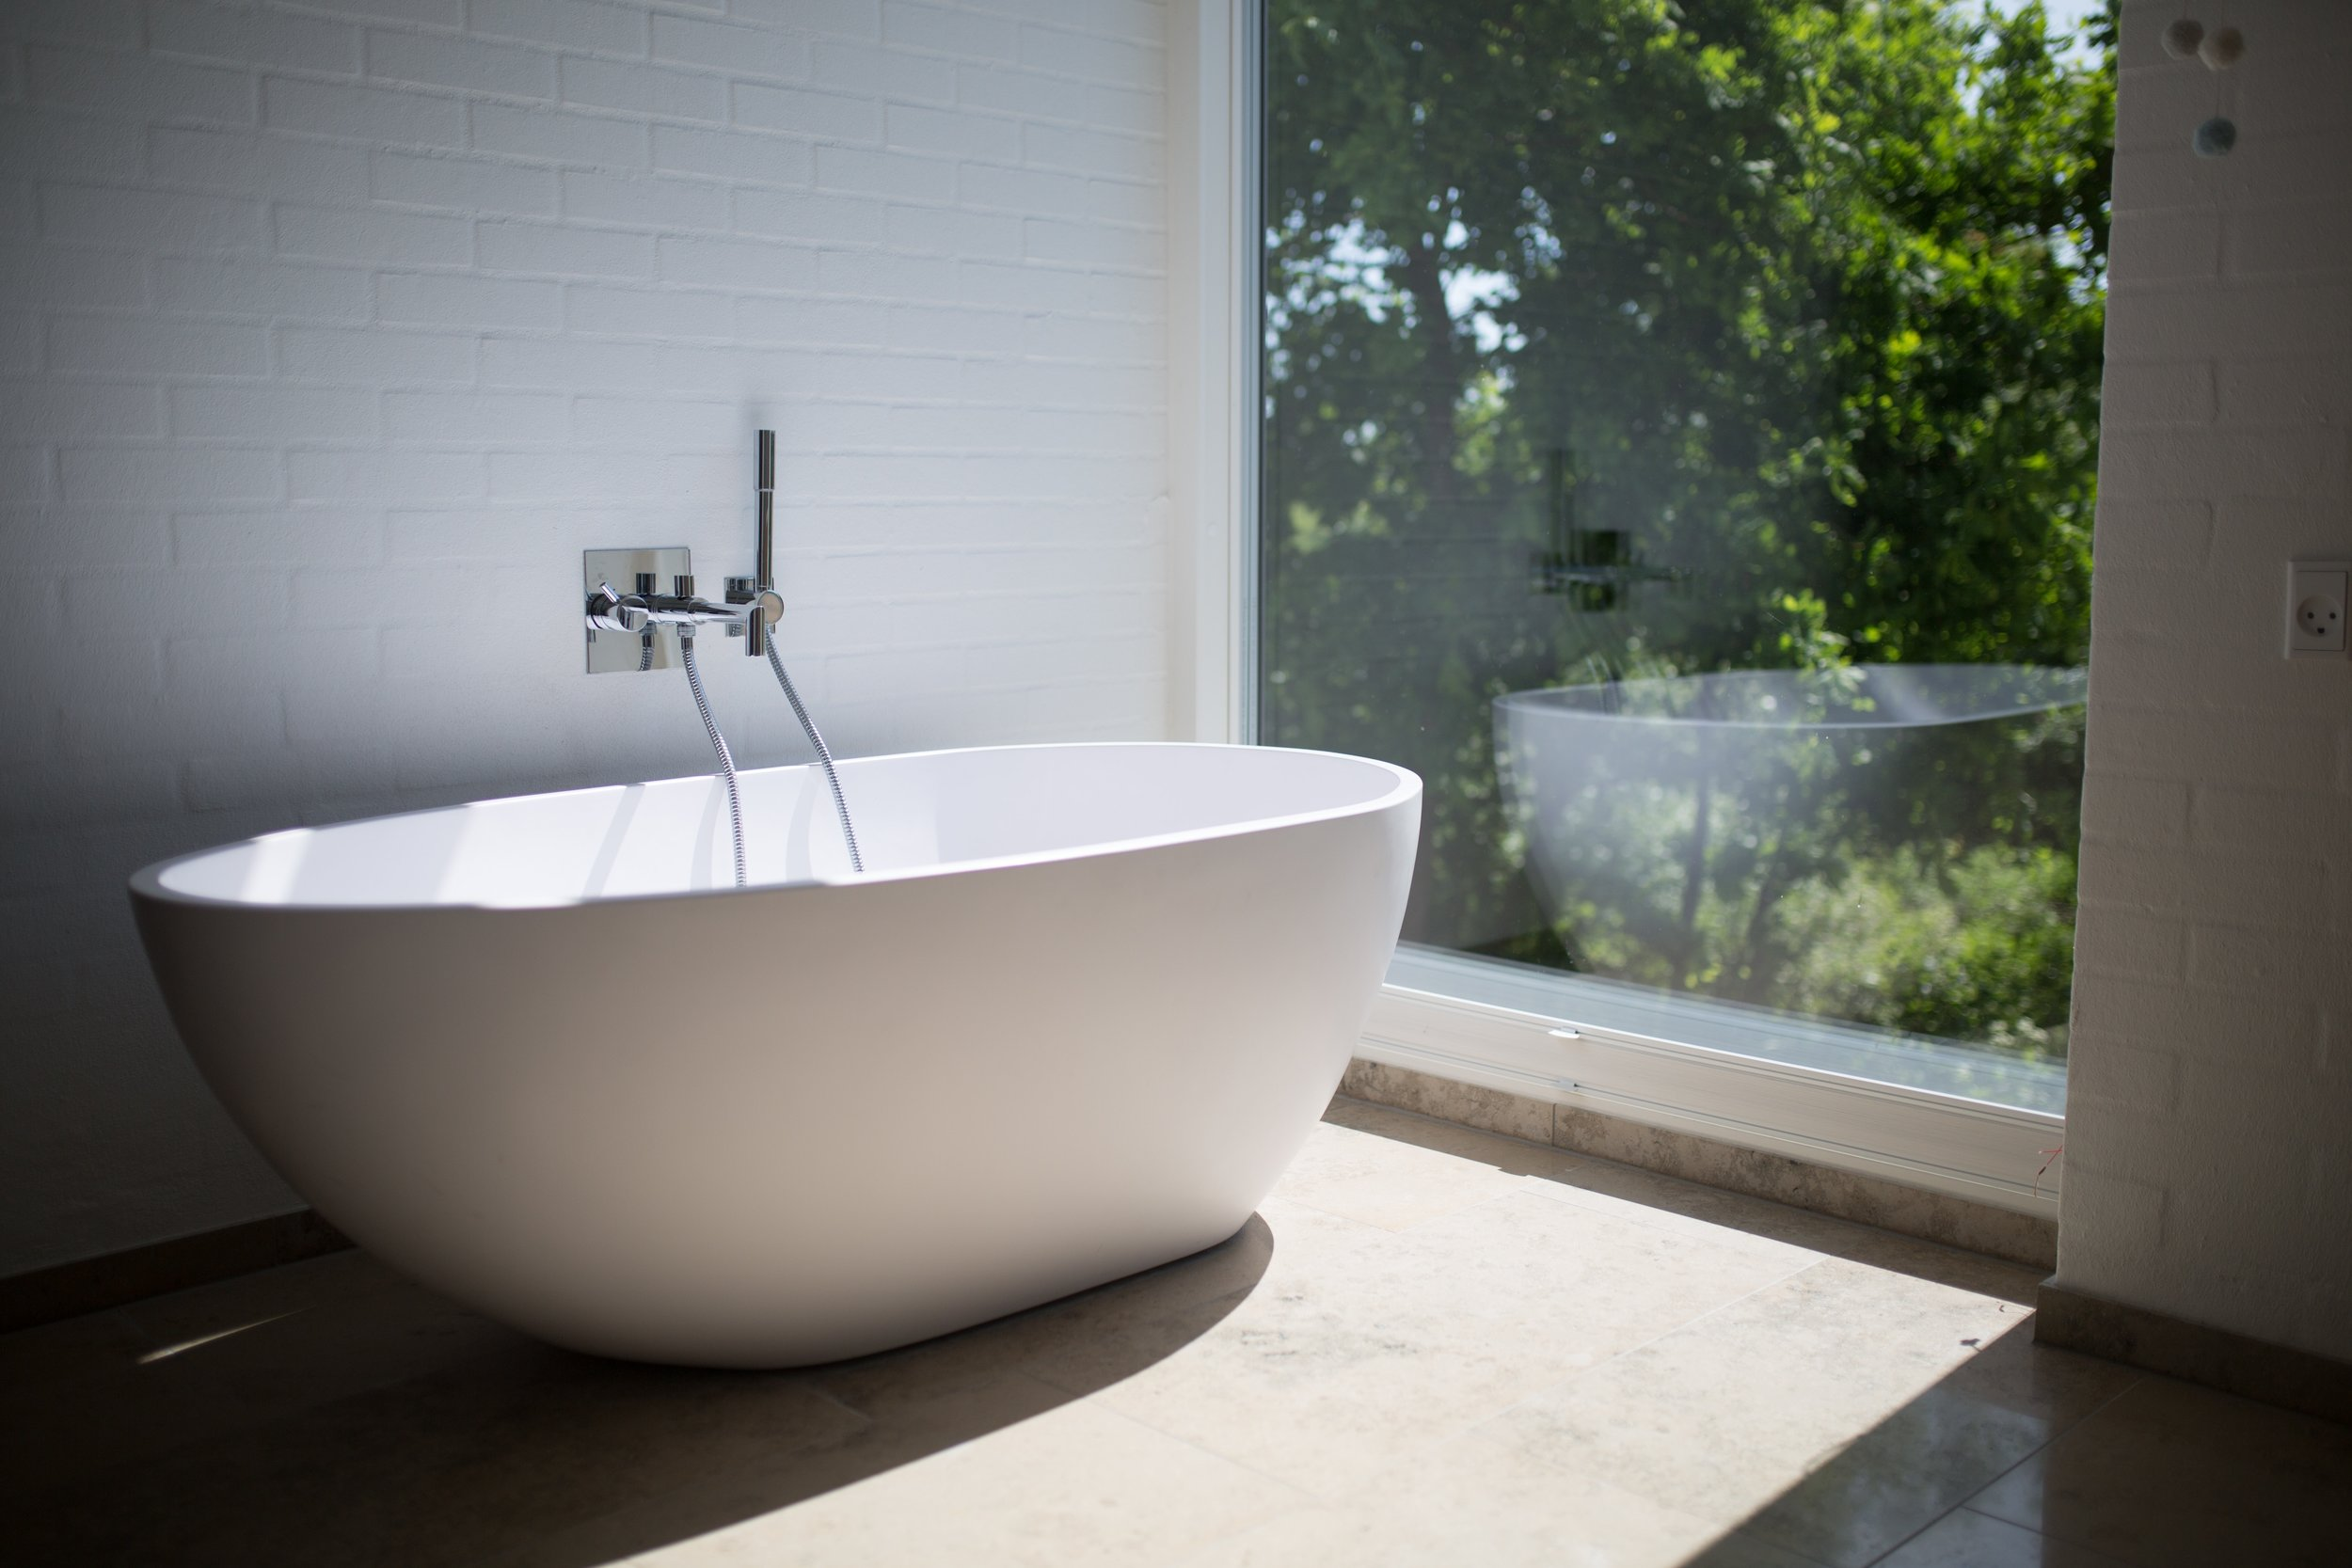 architecture-bathroom-bathtub-1358912.jpg